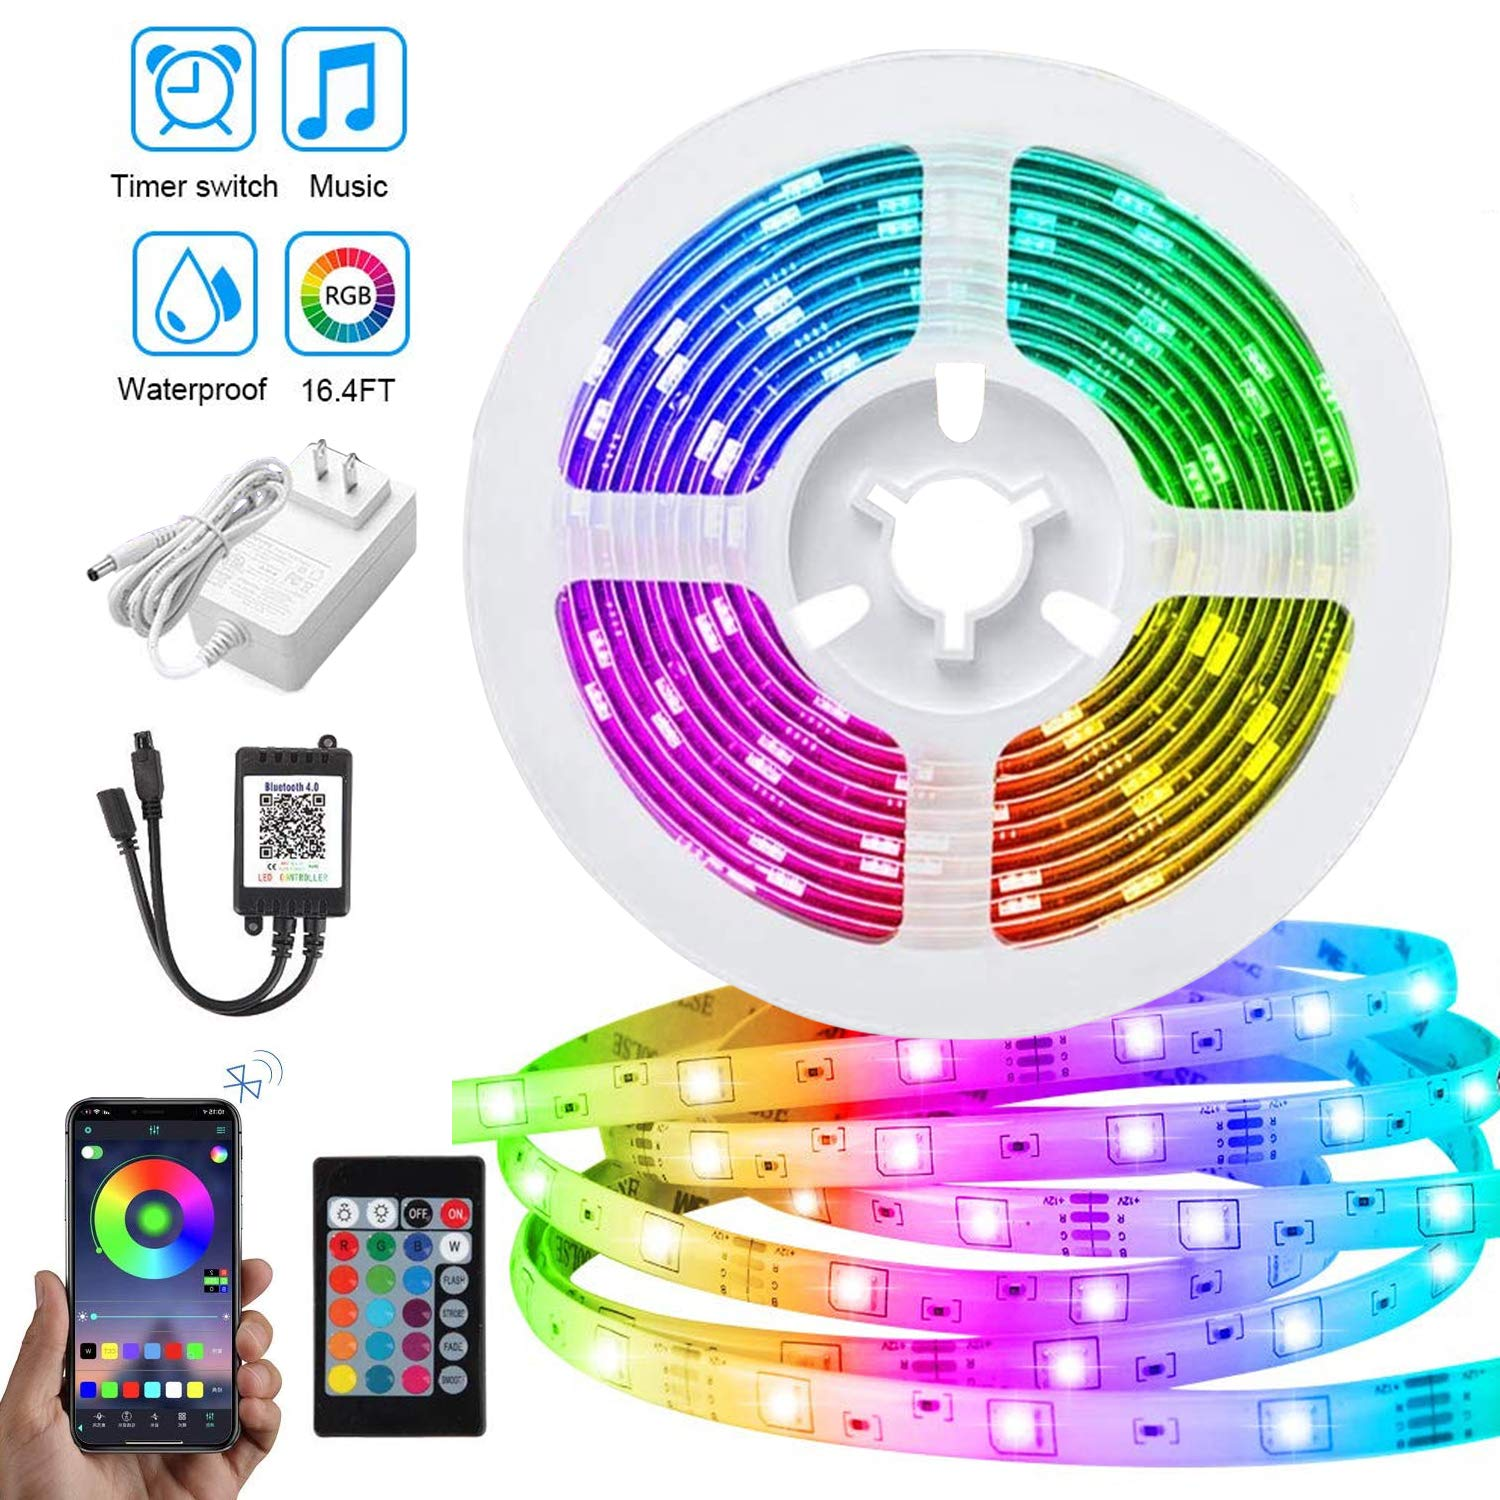 LED Strip Lights, PATIOPTION 16.4ft Waterproof Bluetooth Phone Controller RGB 5050 LED Tape Lights, Music Sync Color Changing LED Strip Lights with Remote for Bedroom, Home Decor, Cabinet, TV, Party